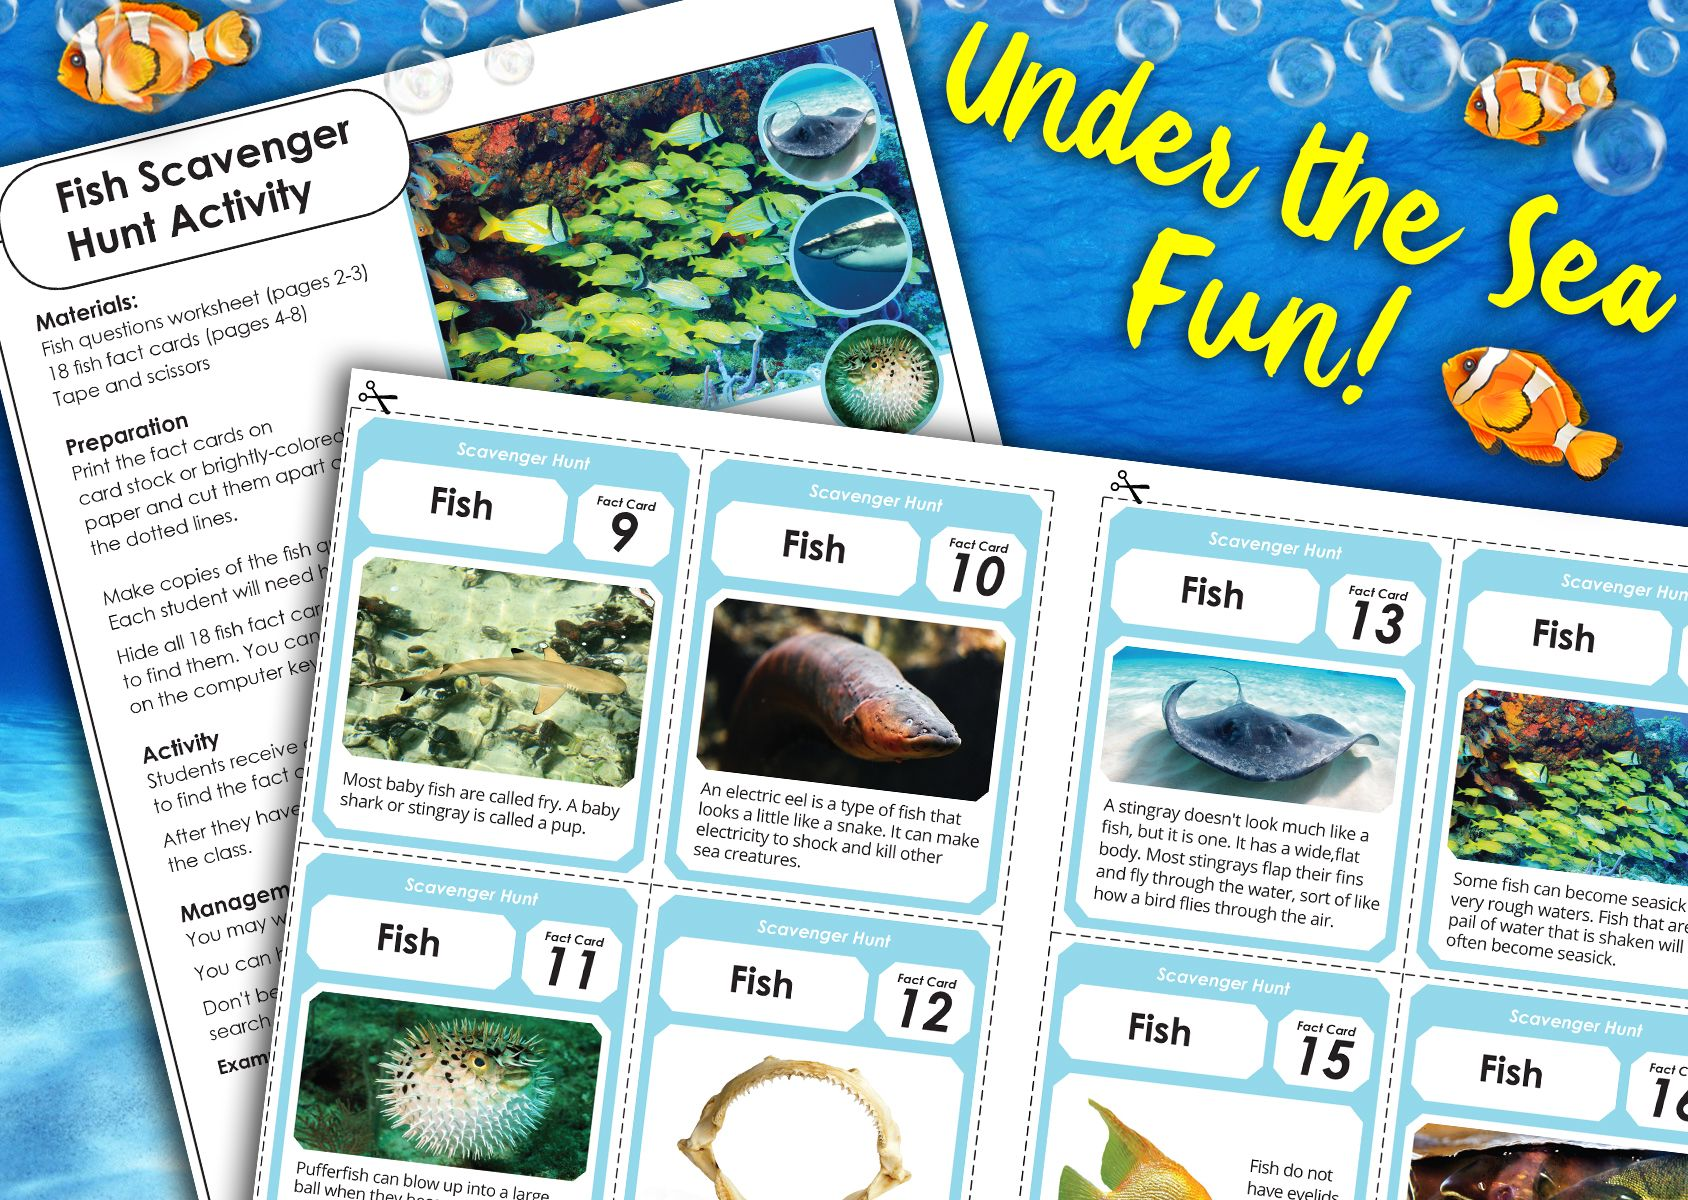 Make Some Waves This Summer With Scavengerhunt Games From Superteacherworksheets Browse Th Classroom Scavenger Hunt Super Teacher Worksheets Scavenger Hunt [ 1200 x 1688 Pixel ]